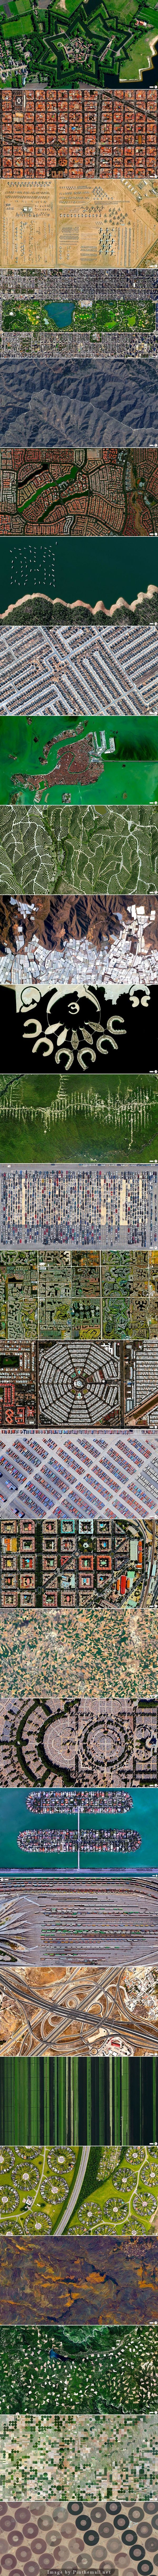 People Drone Photography : Aerial views  So sad how humanity has crowded into horrible box shapes